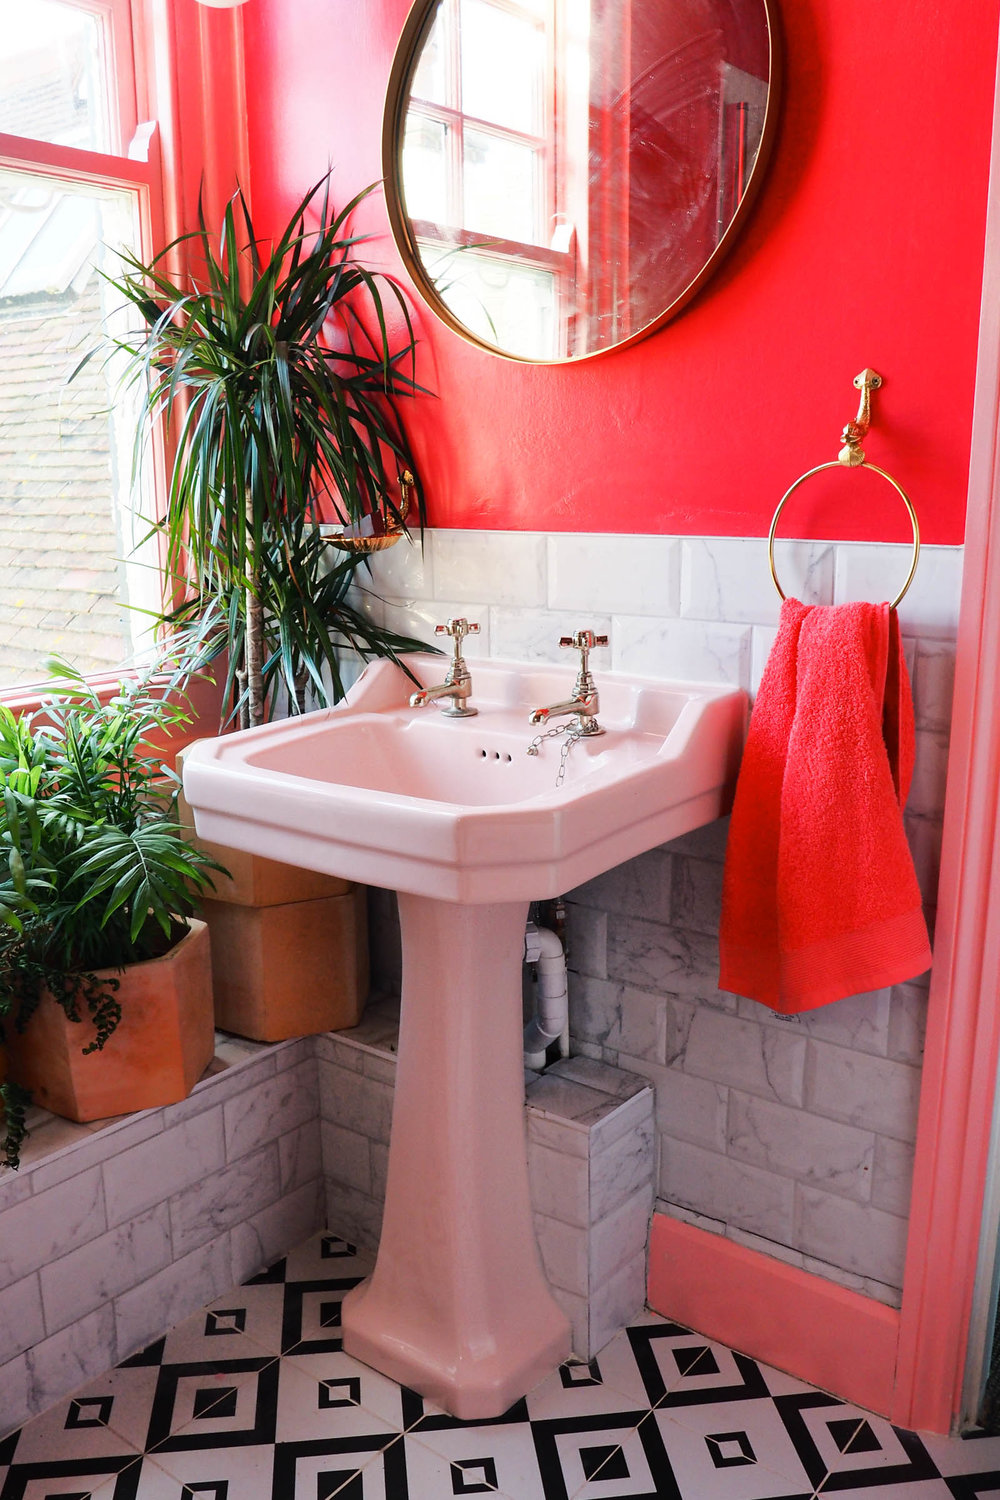 Amy's pink and marble bathroom with black and white tiles, green houseplants and brass accents.